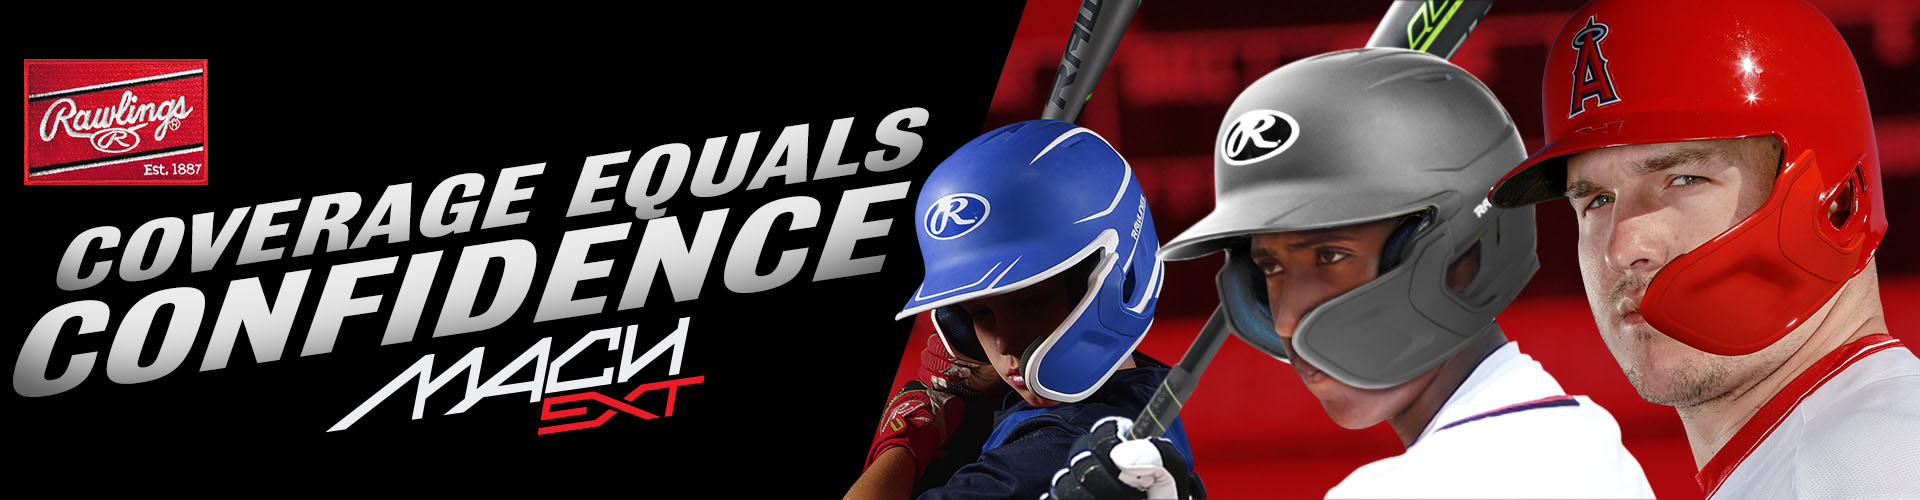 Shop The Rawlings Mach Baseball & Softball Helmet Available For Sale Online & In Store At Your Local Source For Sports Store Near You.